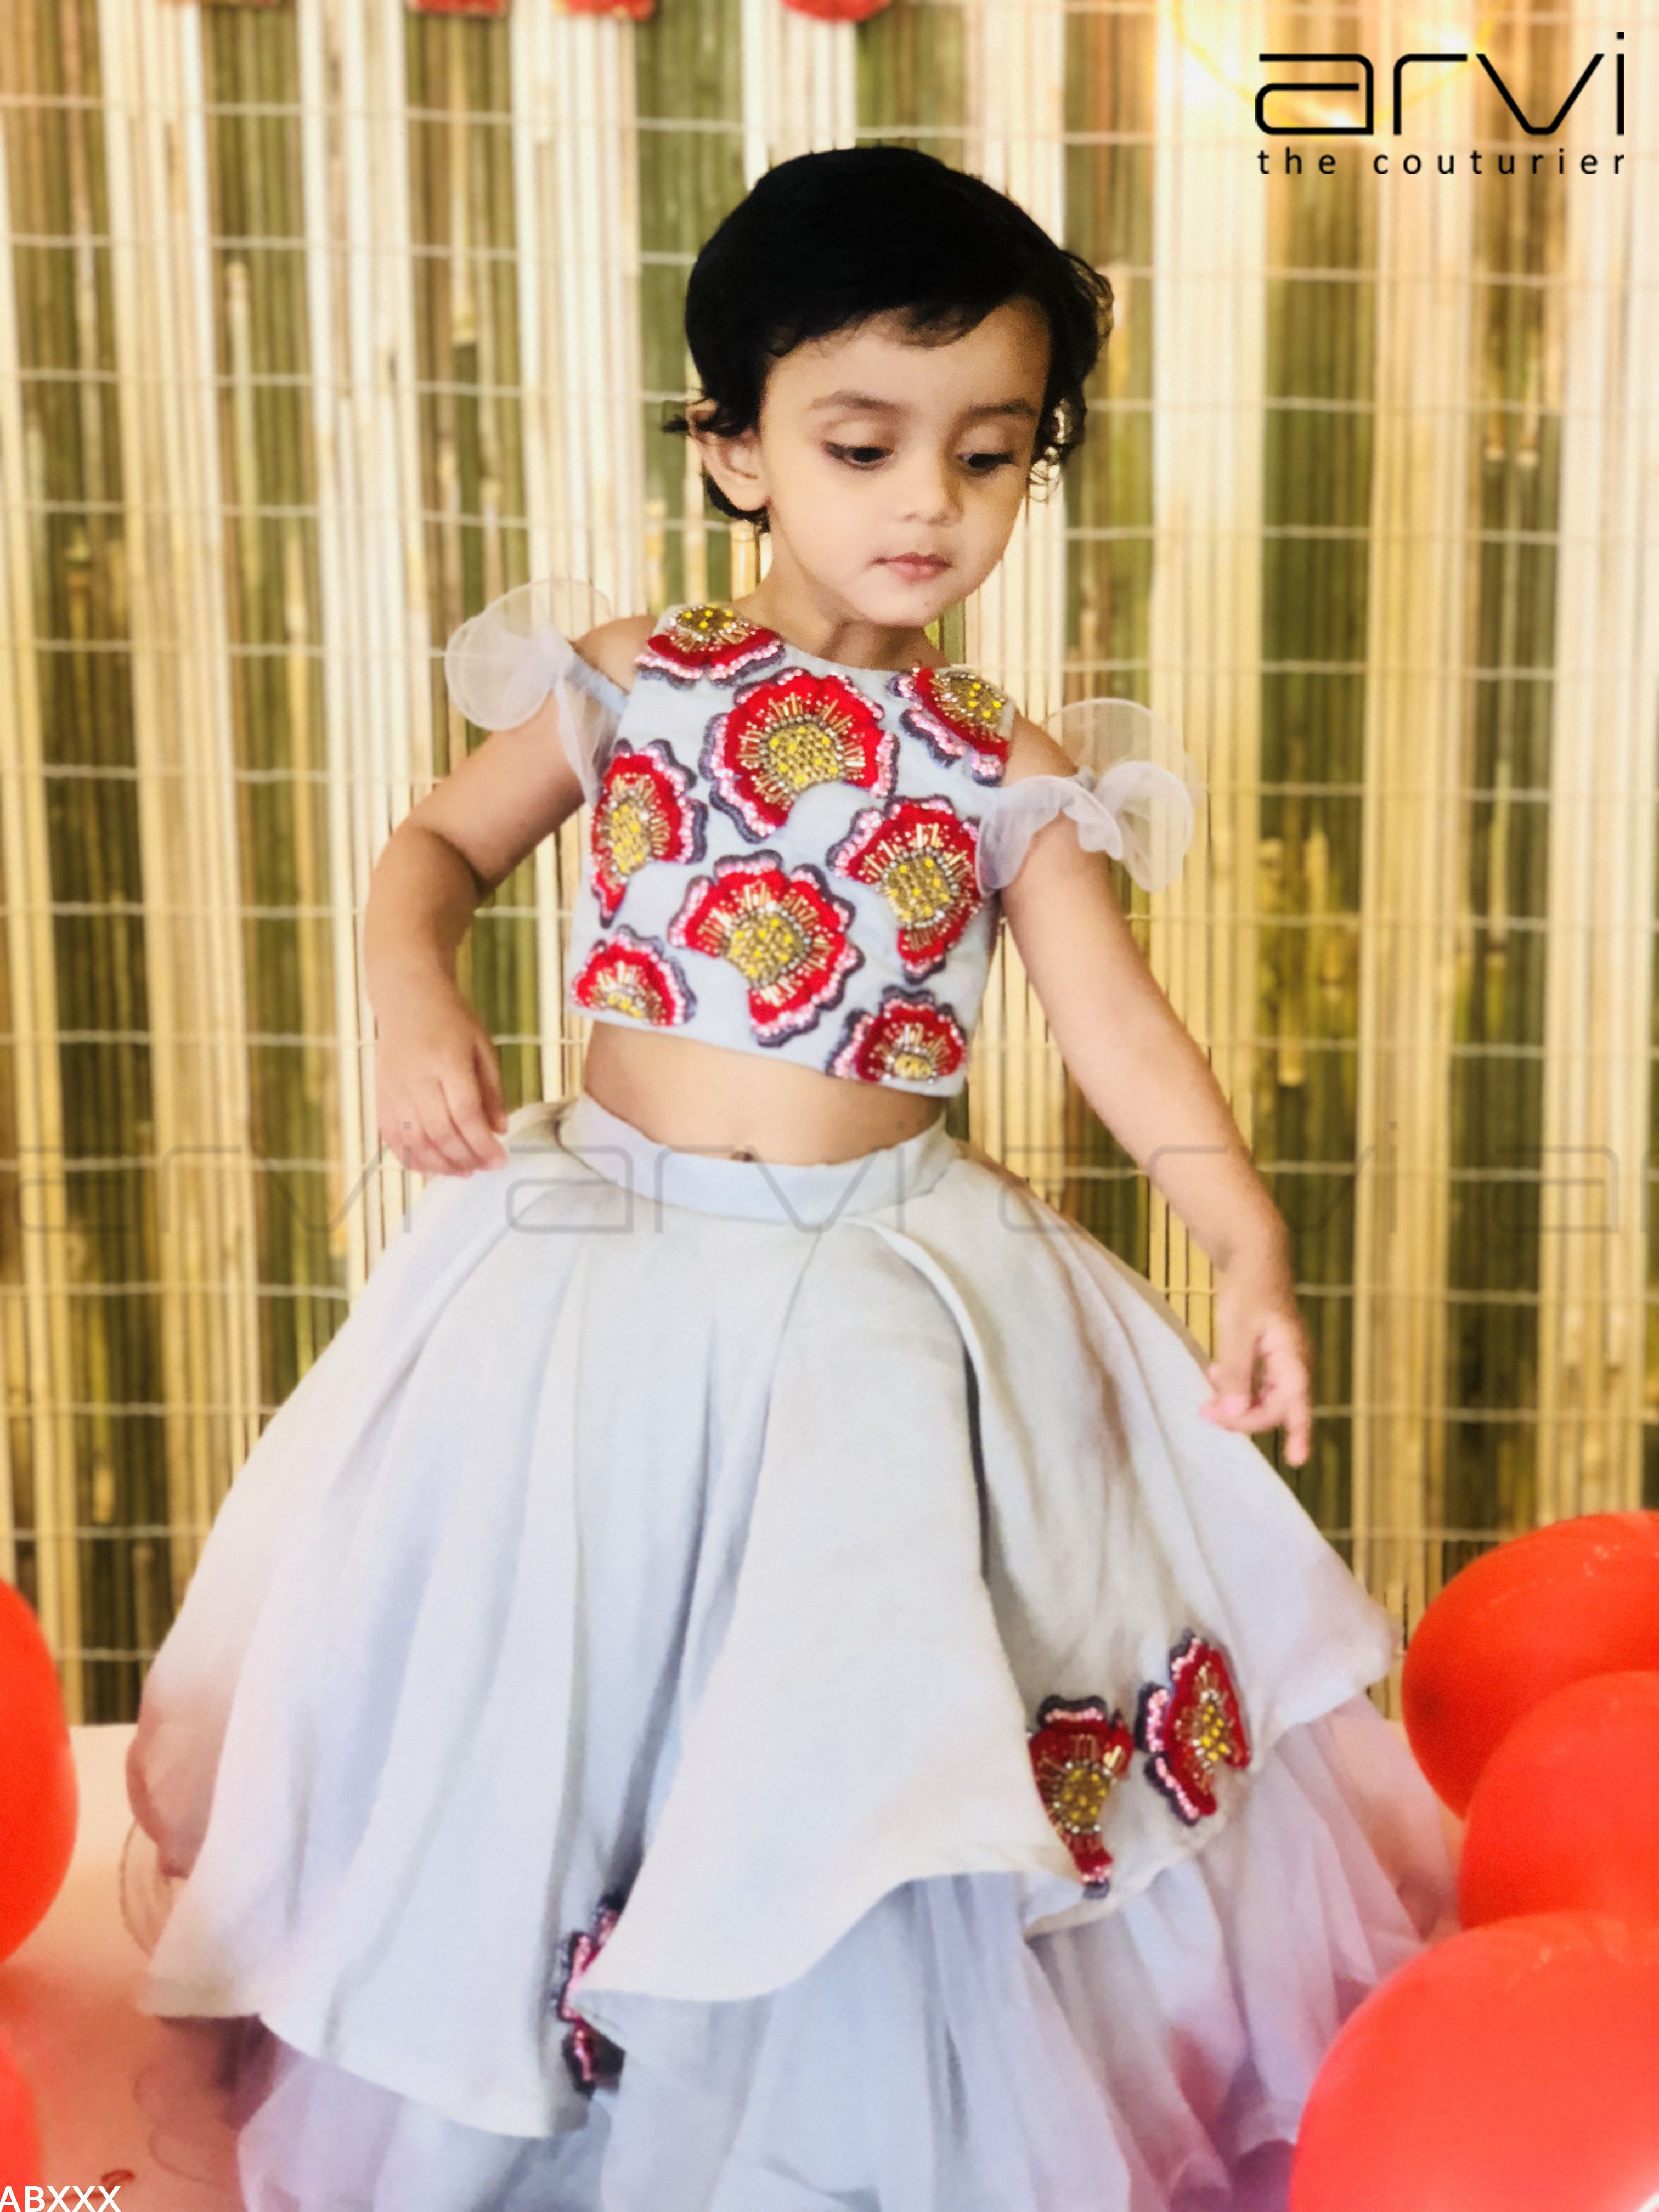 Custom Tailored Outfits for Family by Arvi the couturier